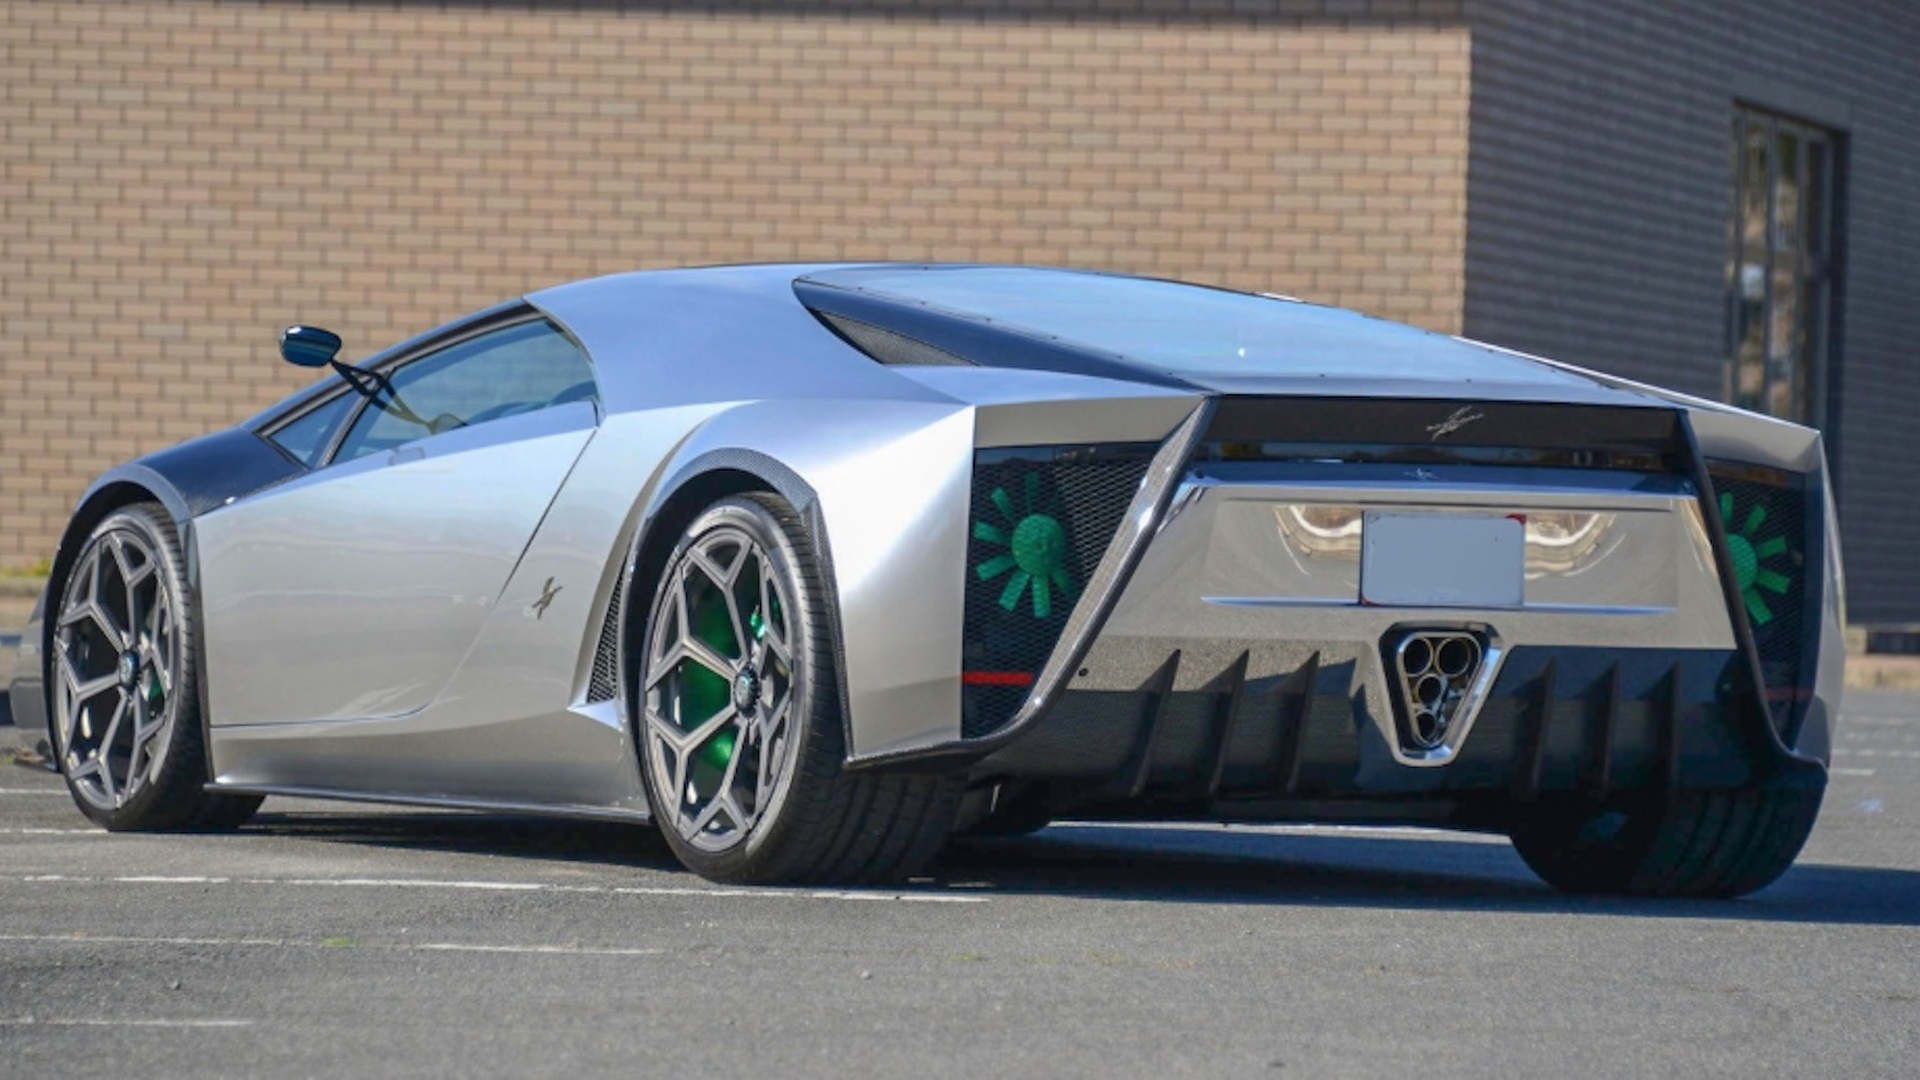 Kode 0 Lamborghini Aventador-based supercar for sale